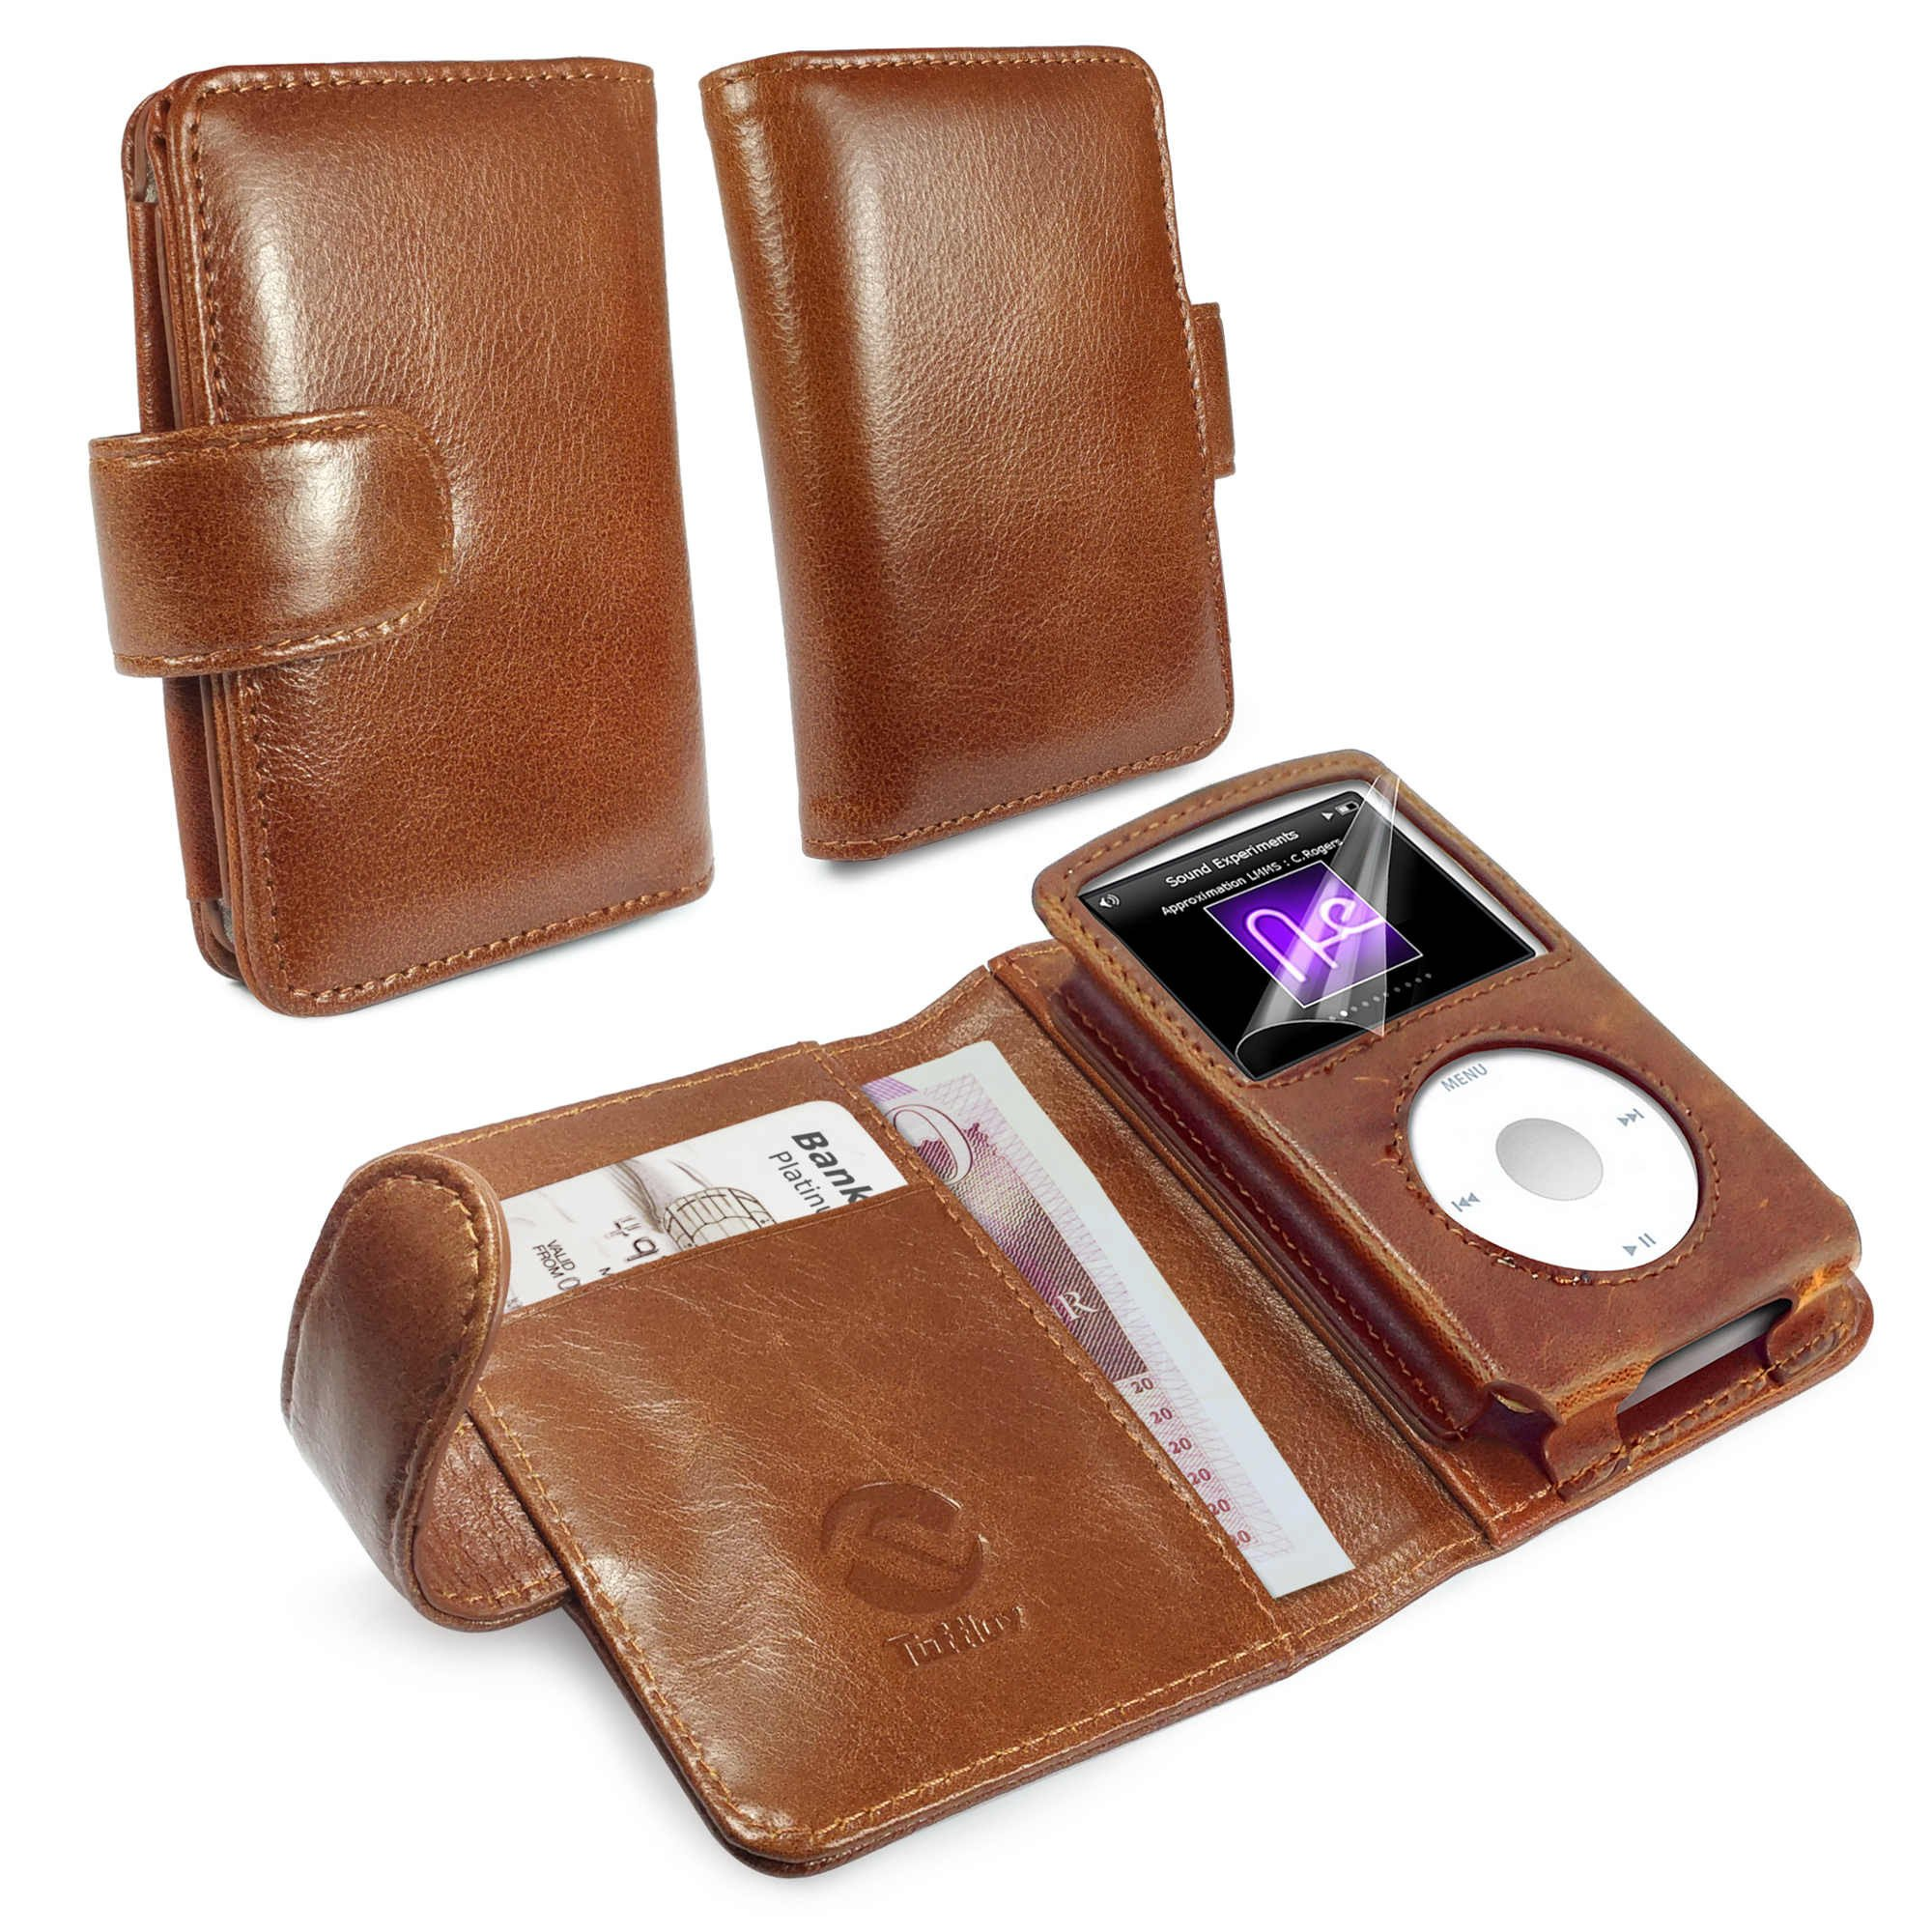 Tuff-Luv Vintage Genuine Leather Wallet case Cover for iPod Classic - Brown